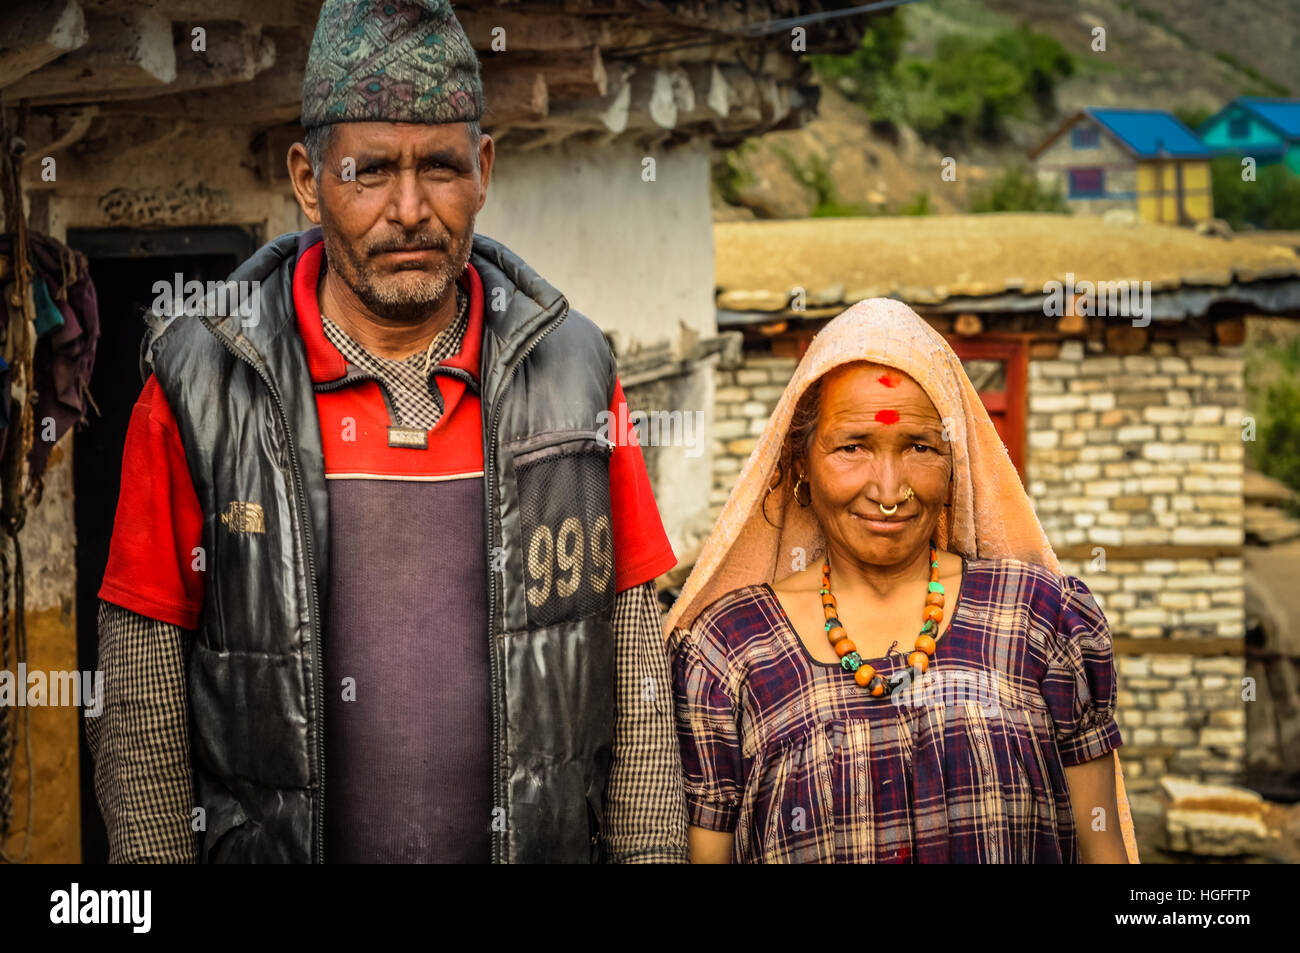 Dolpo, Nepal - circa June 2012: Native man with cap wears grey vest and red shirt with his wife in purple dress - Stock Image